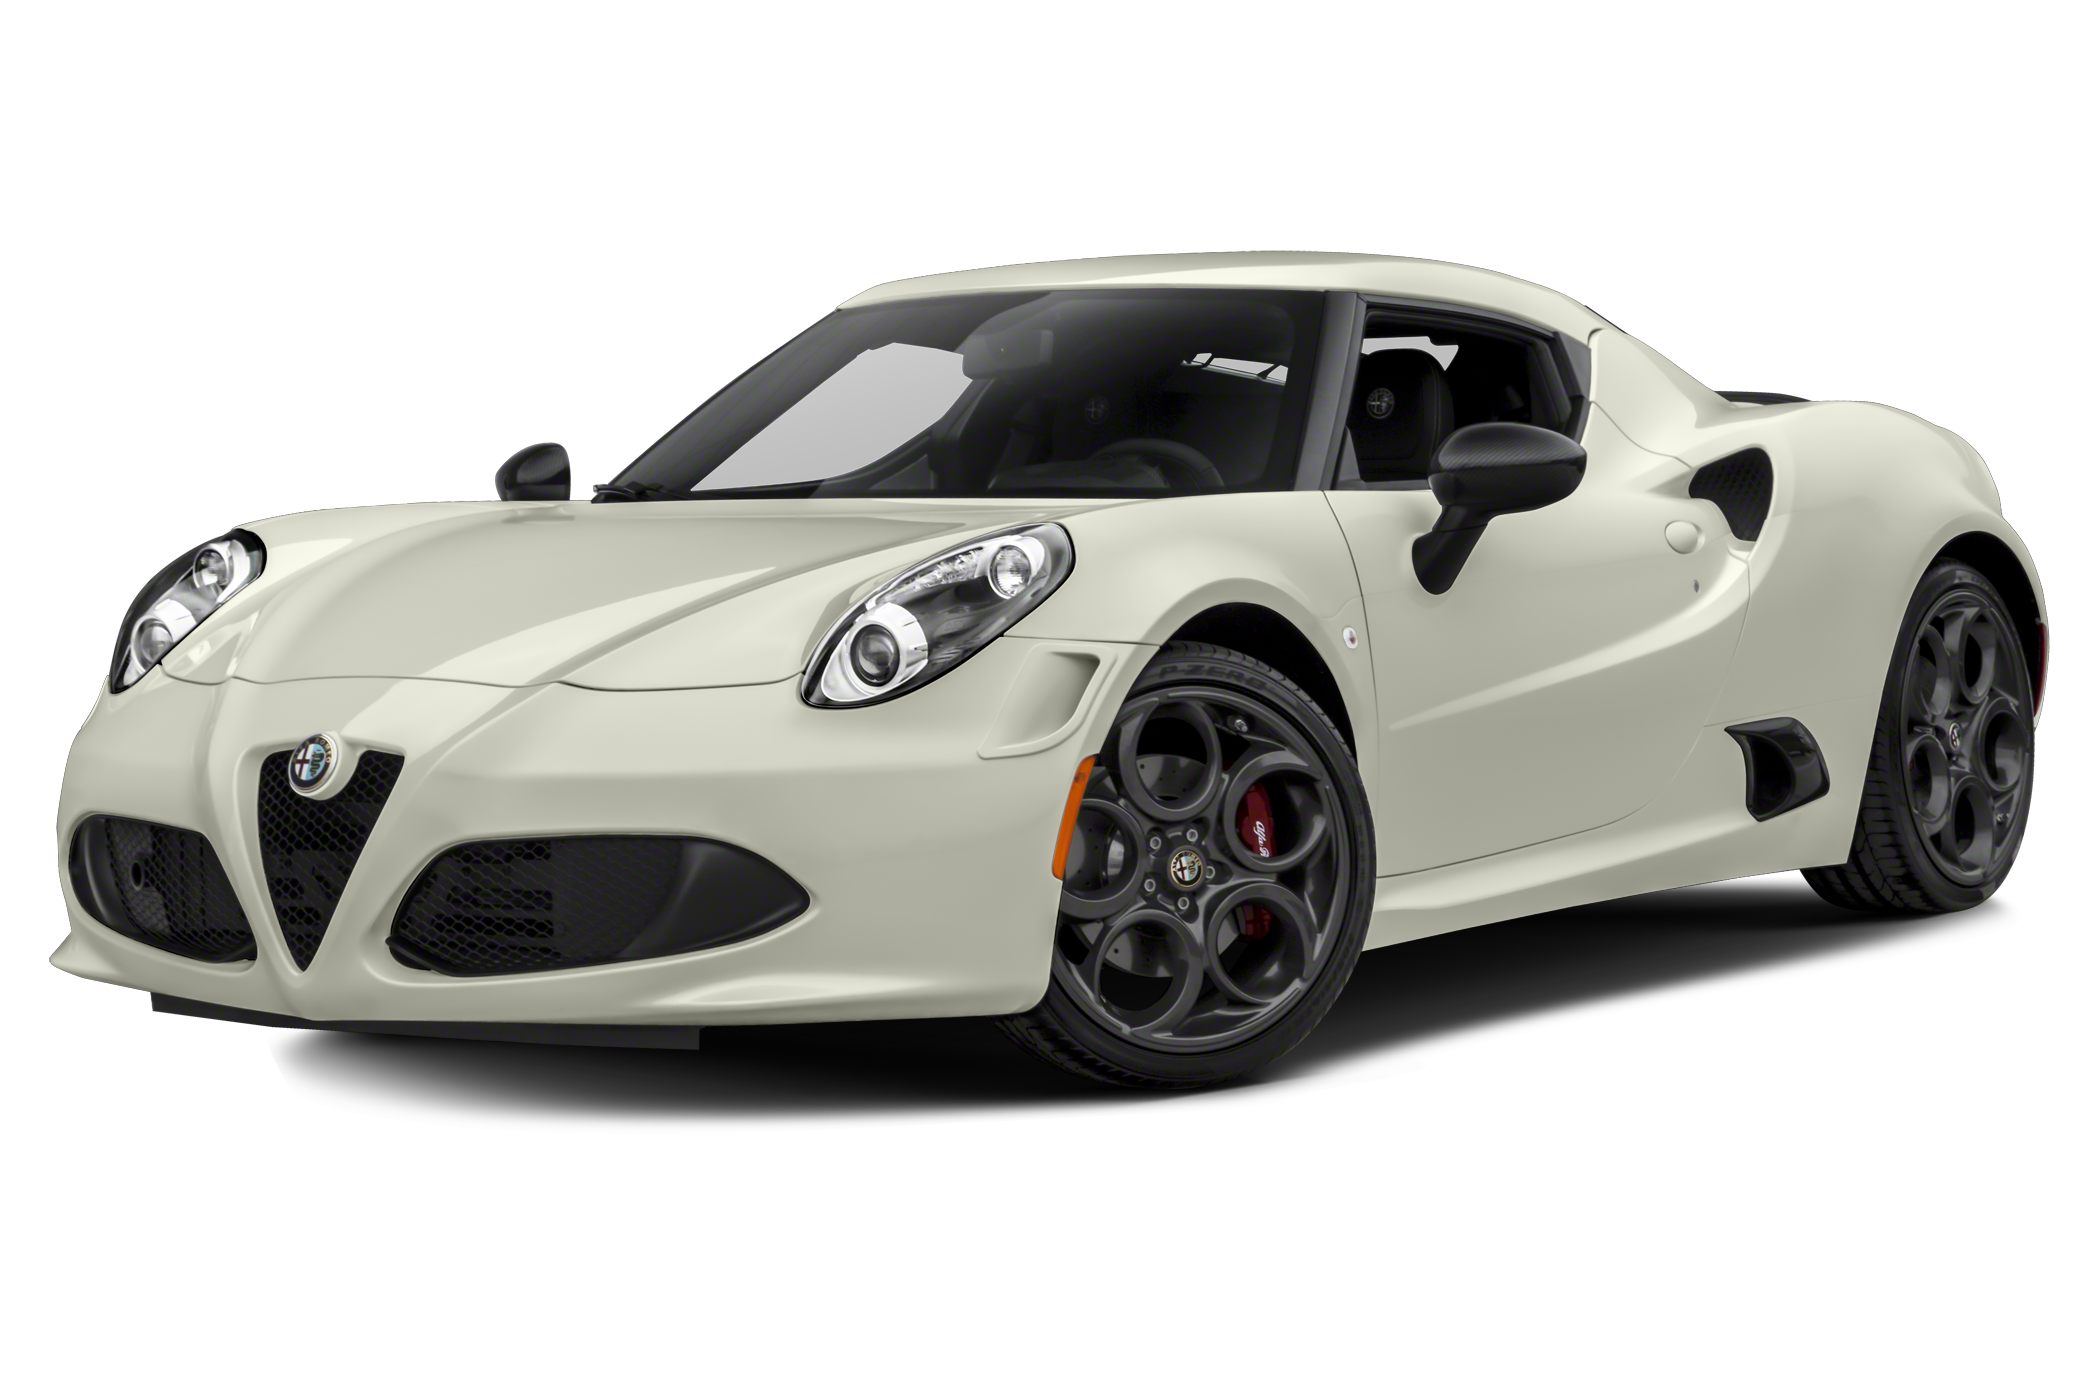 2015 Alfa Romeo 4C Launch Edition 2dr Coupe Specs and Prices